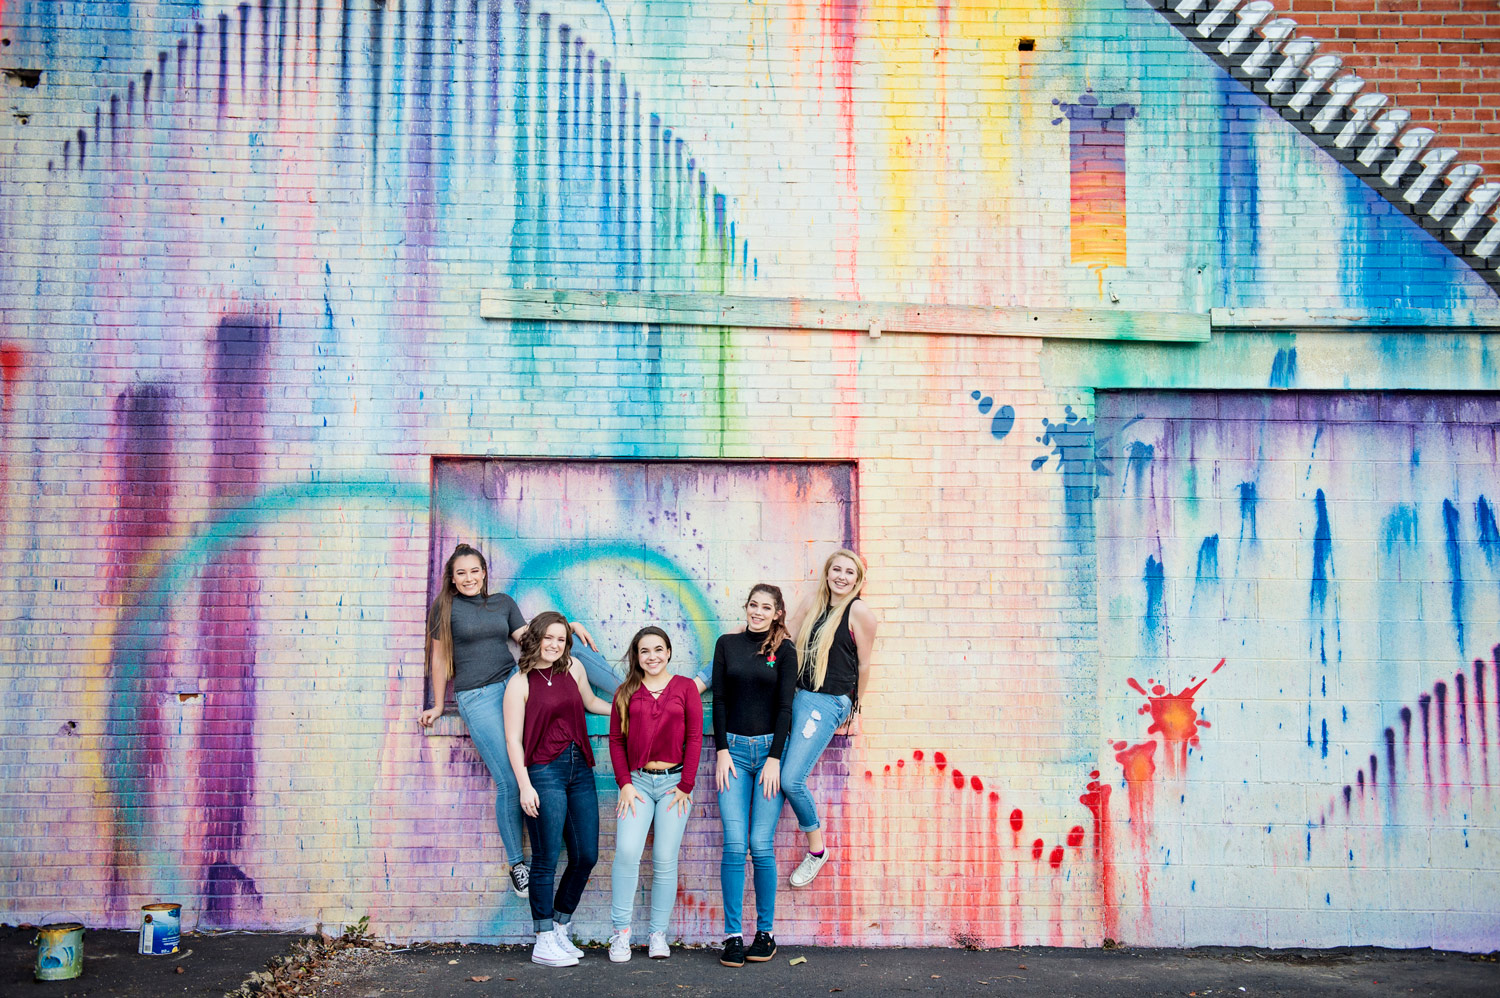 downtown-houston-texas-teenagers-graffiti.jpg